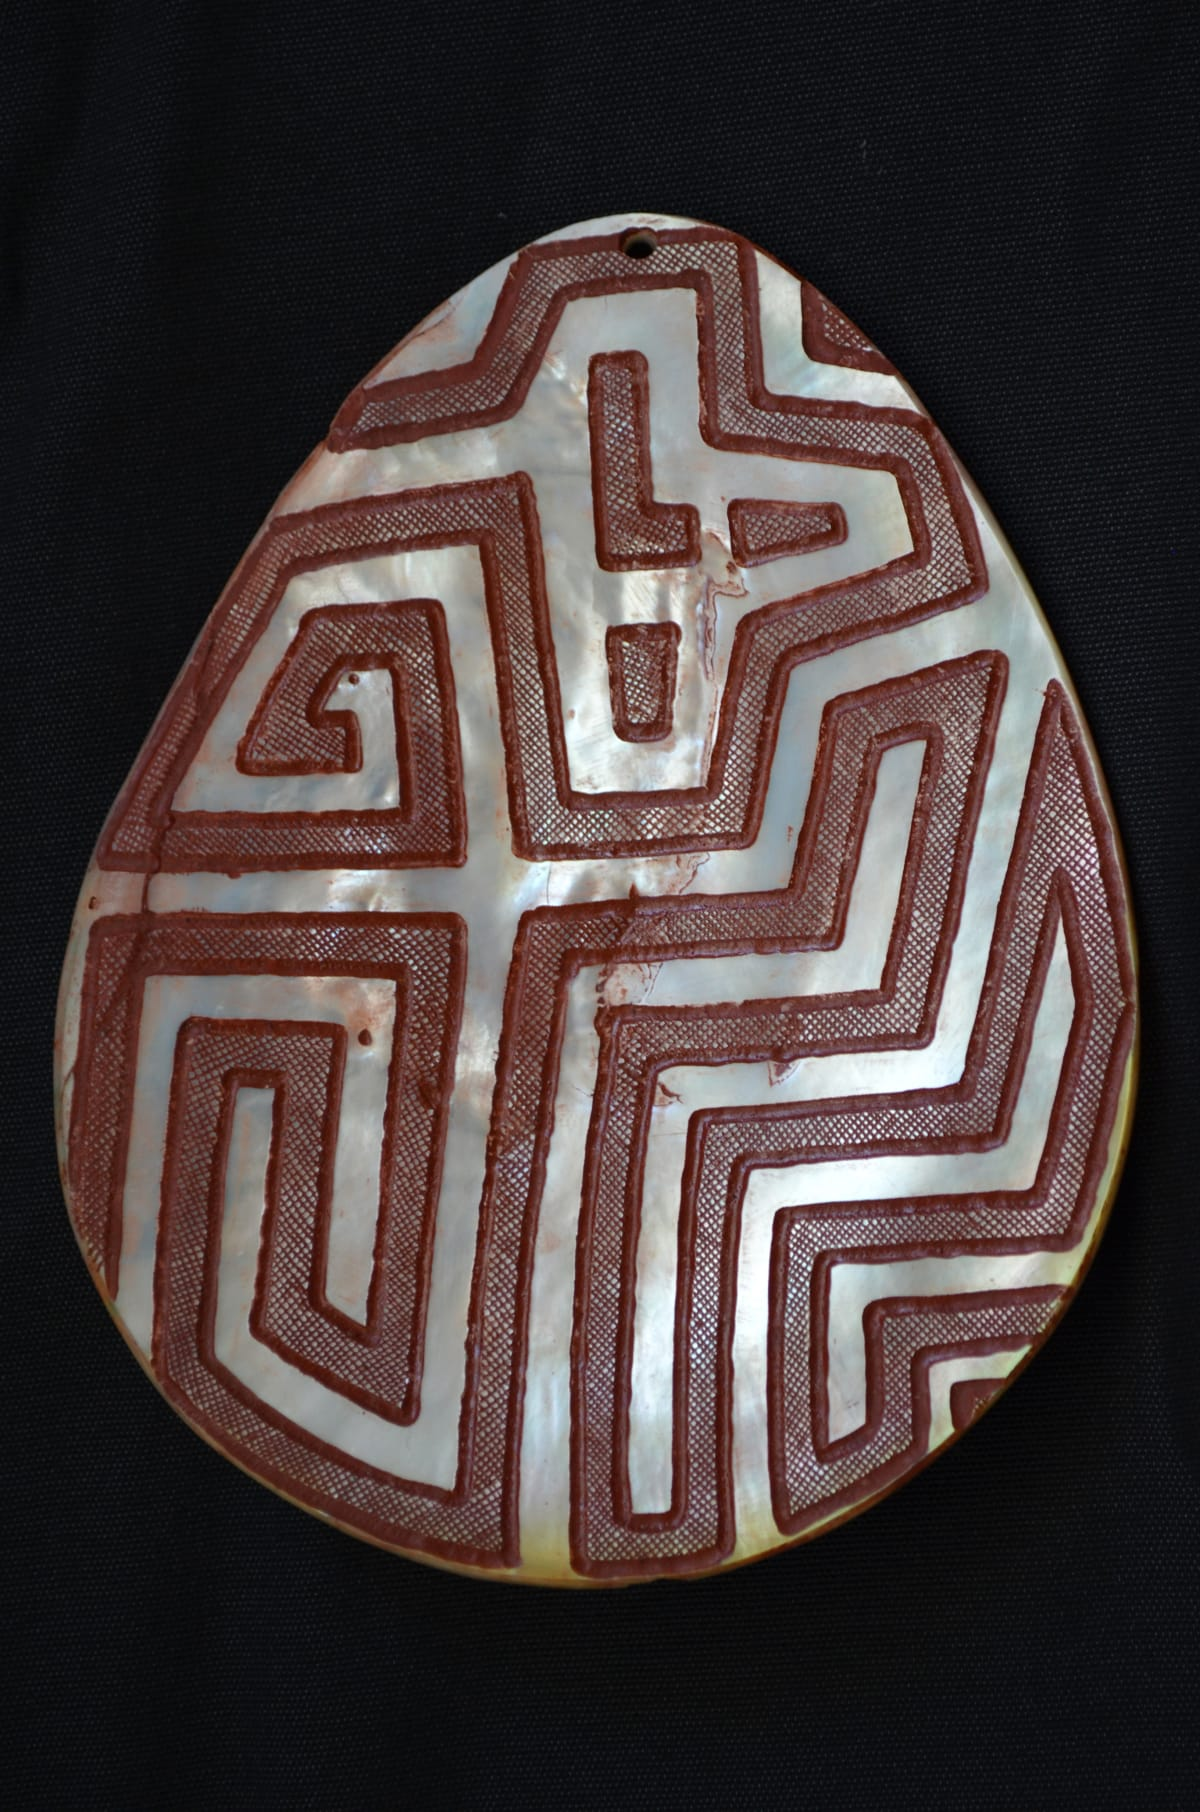 Sebastian Arrow Jalinyi ochre carving on pearlshell 16.5 x 15 cm